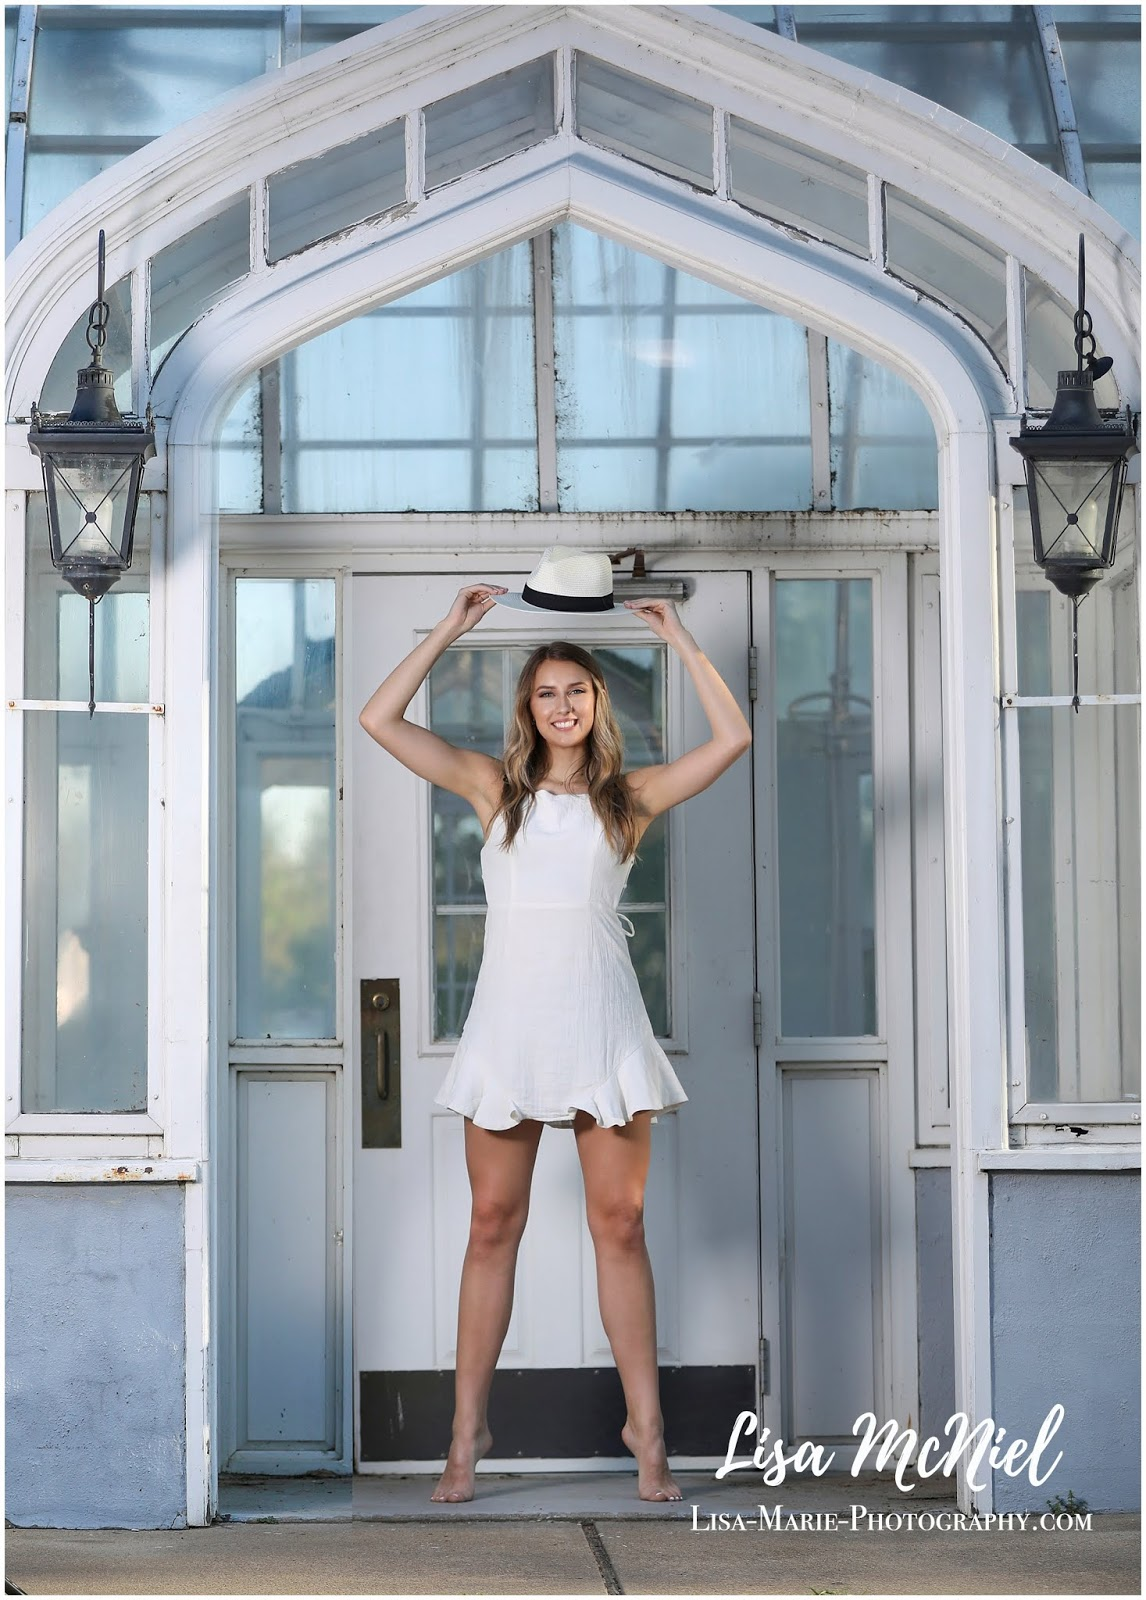 pretty teen girl in white dress in front of greenhouse